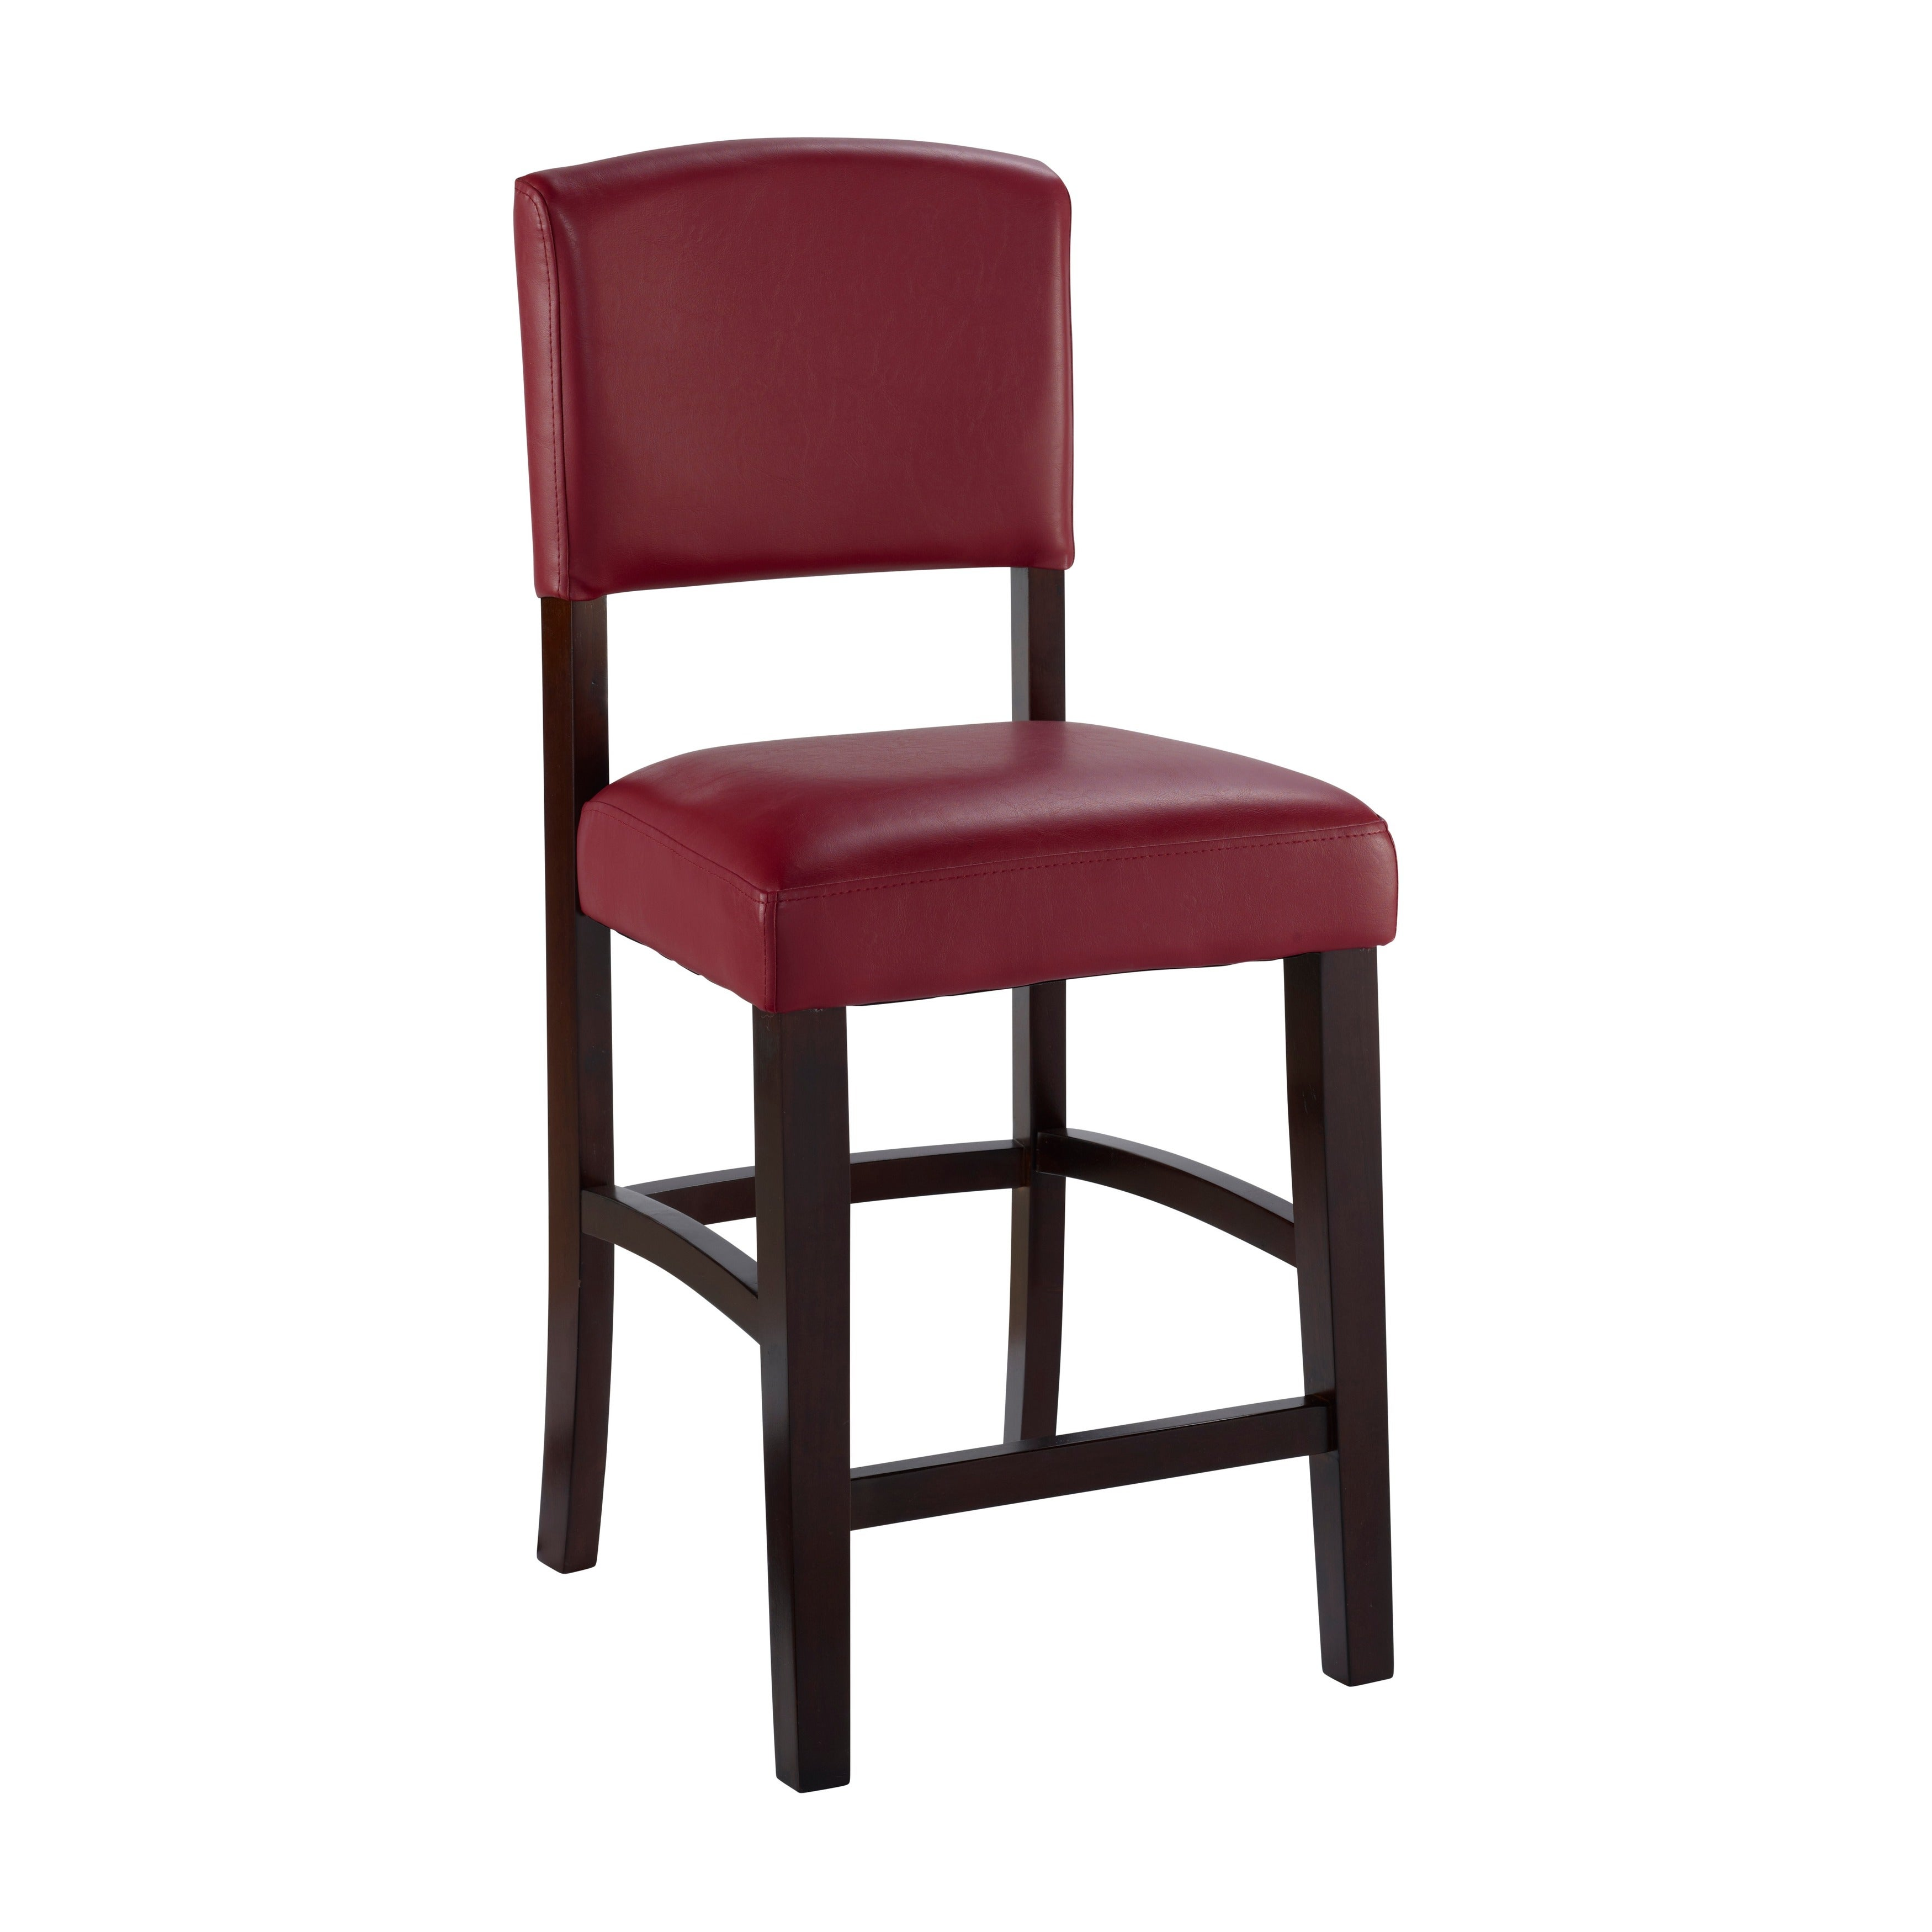 Linon Monte Carlo Stationary Bar Stool Dark Red Vinyl Free Shipping Today 8615435